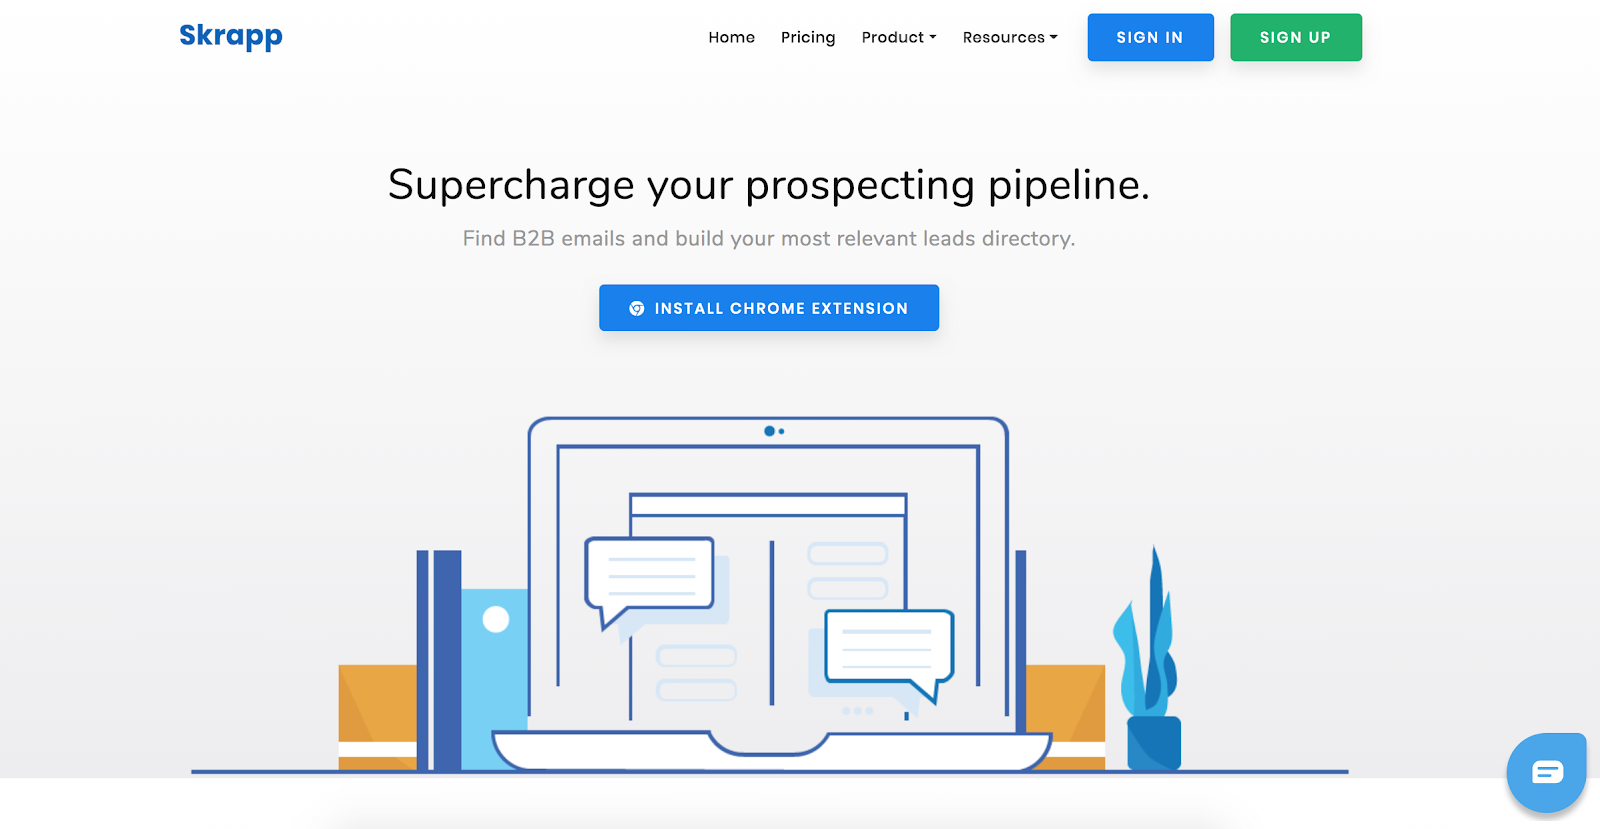 Skrapp.io is the fourth Best B2B Lead Generation Tool example | The article is 21 of the Best B2B Lead Generation Tools for 2020